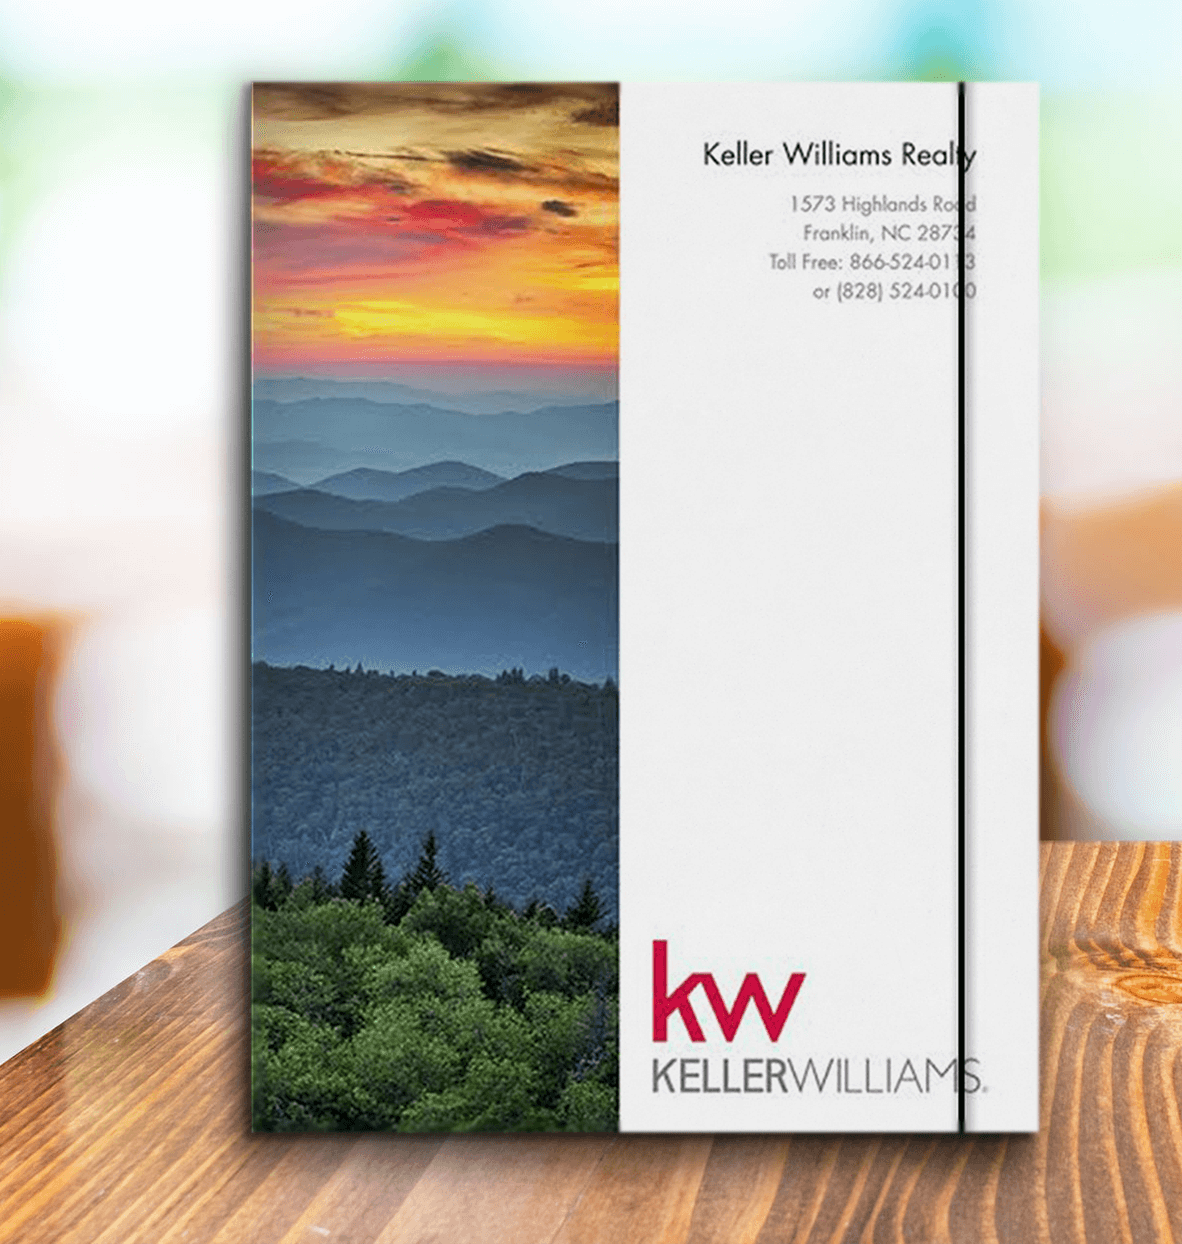 Keller Williams Realty Portfolio